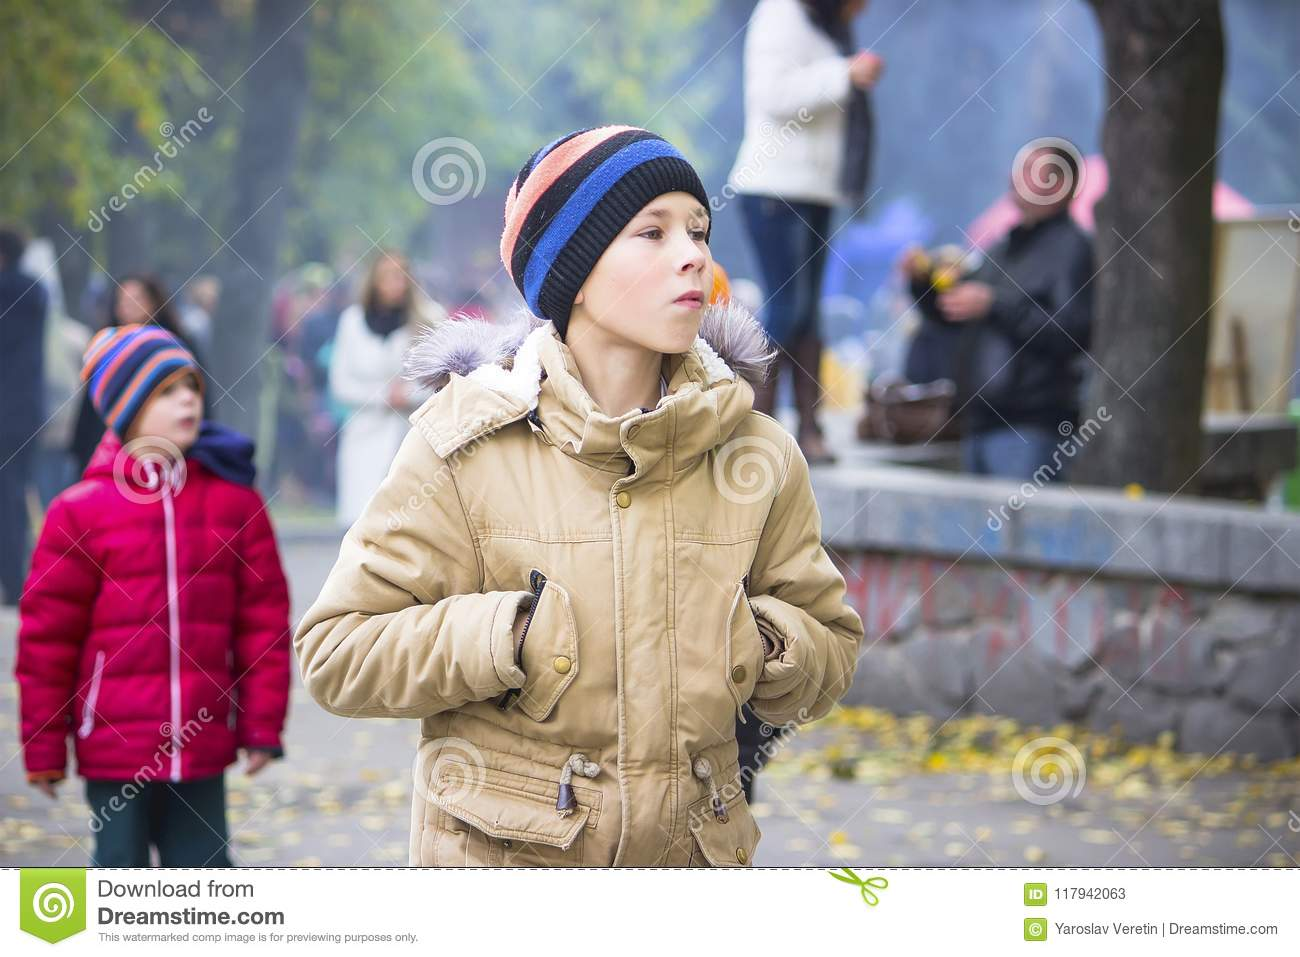 A boy looks out at event